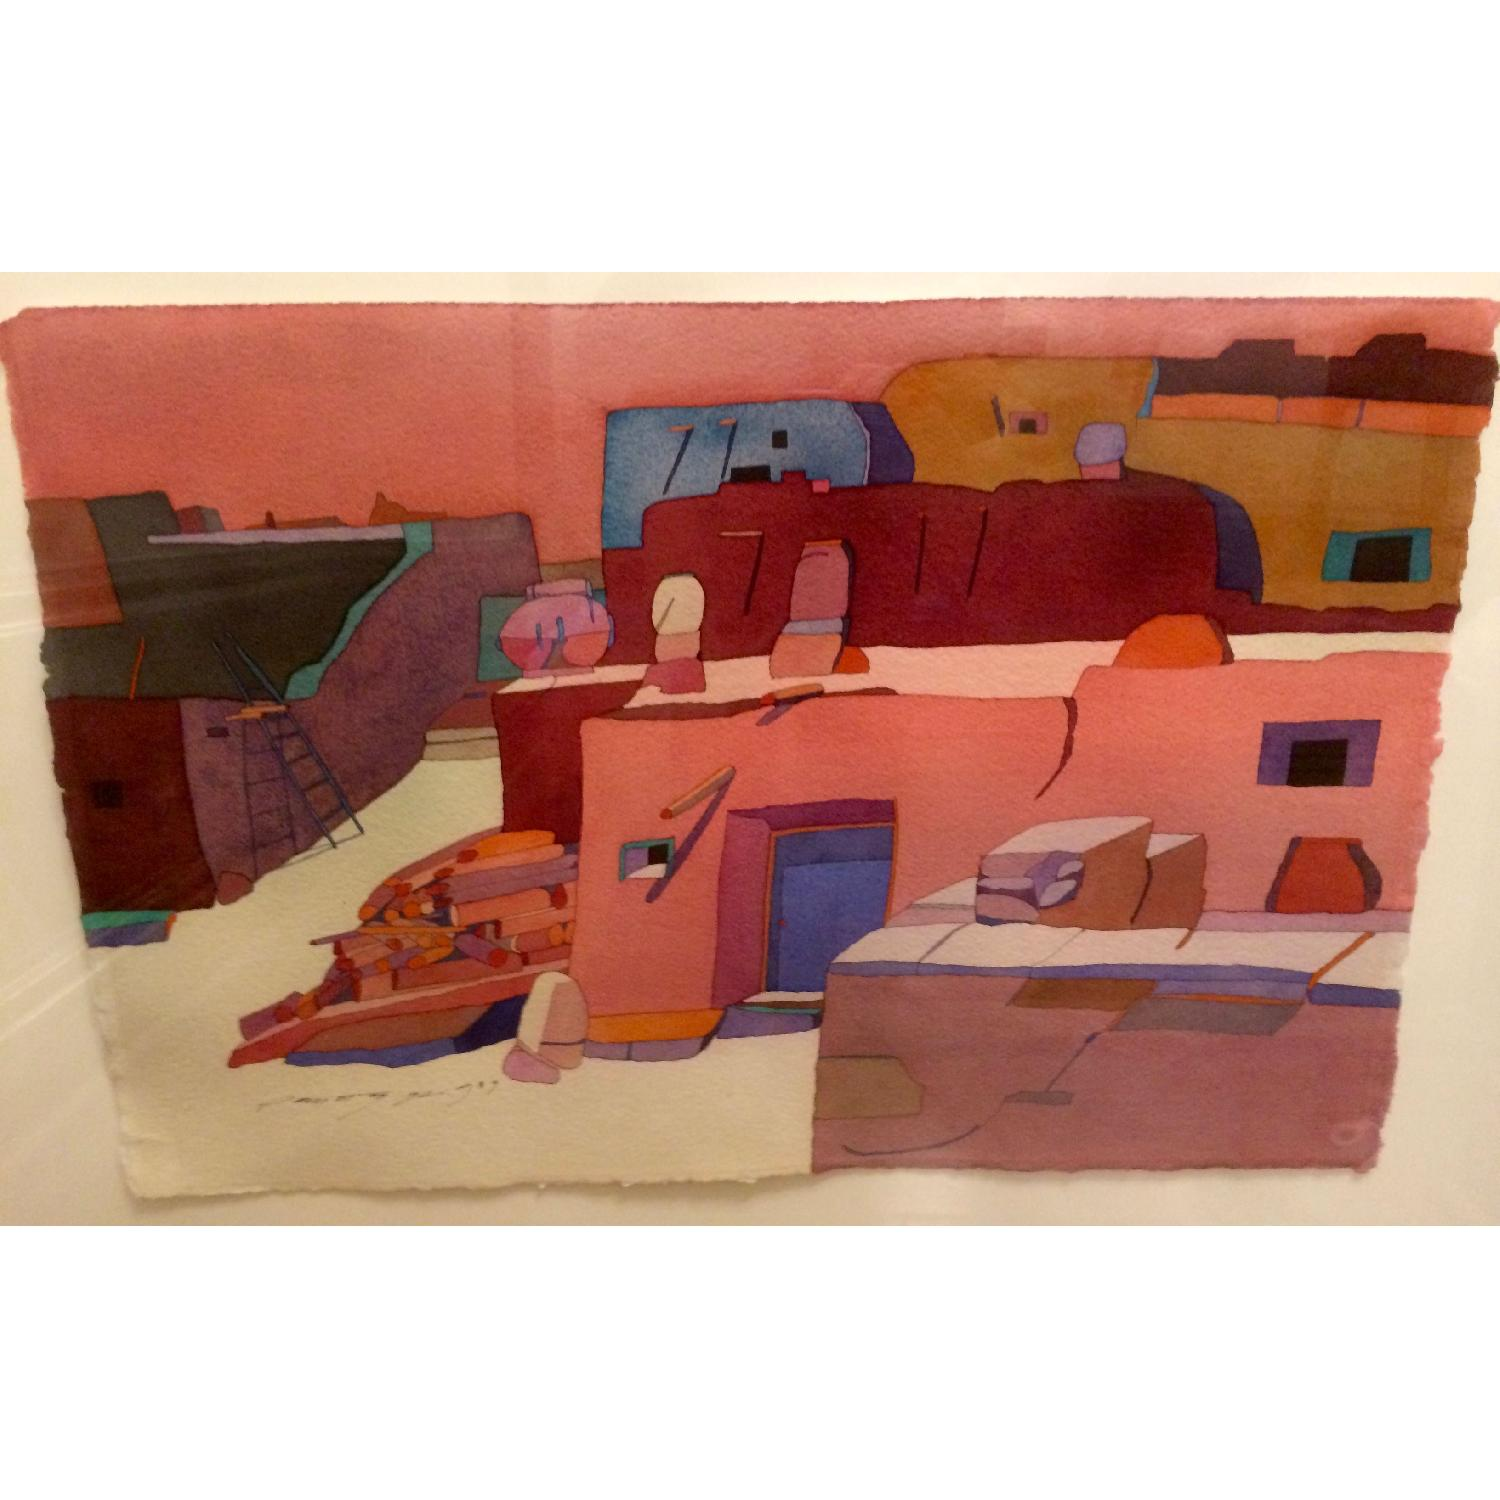 Framed Sari Staggs Watercolor Painting - Village Kiva with Fireplace - image-4